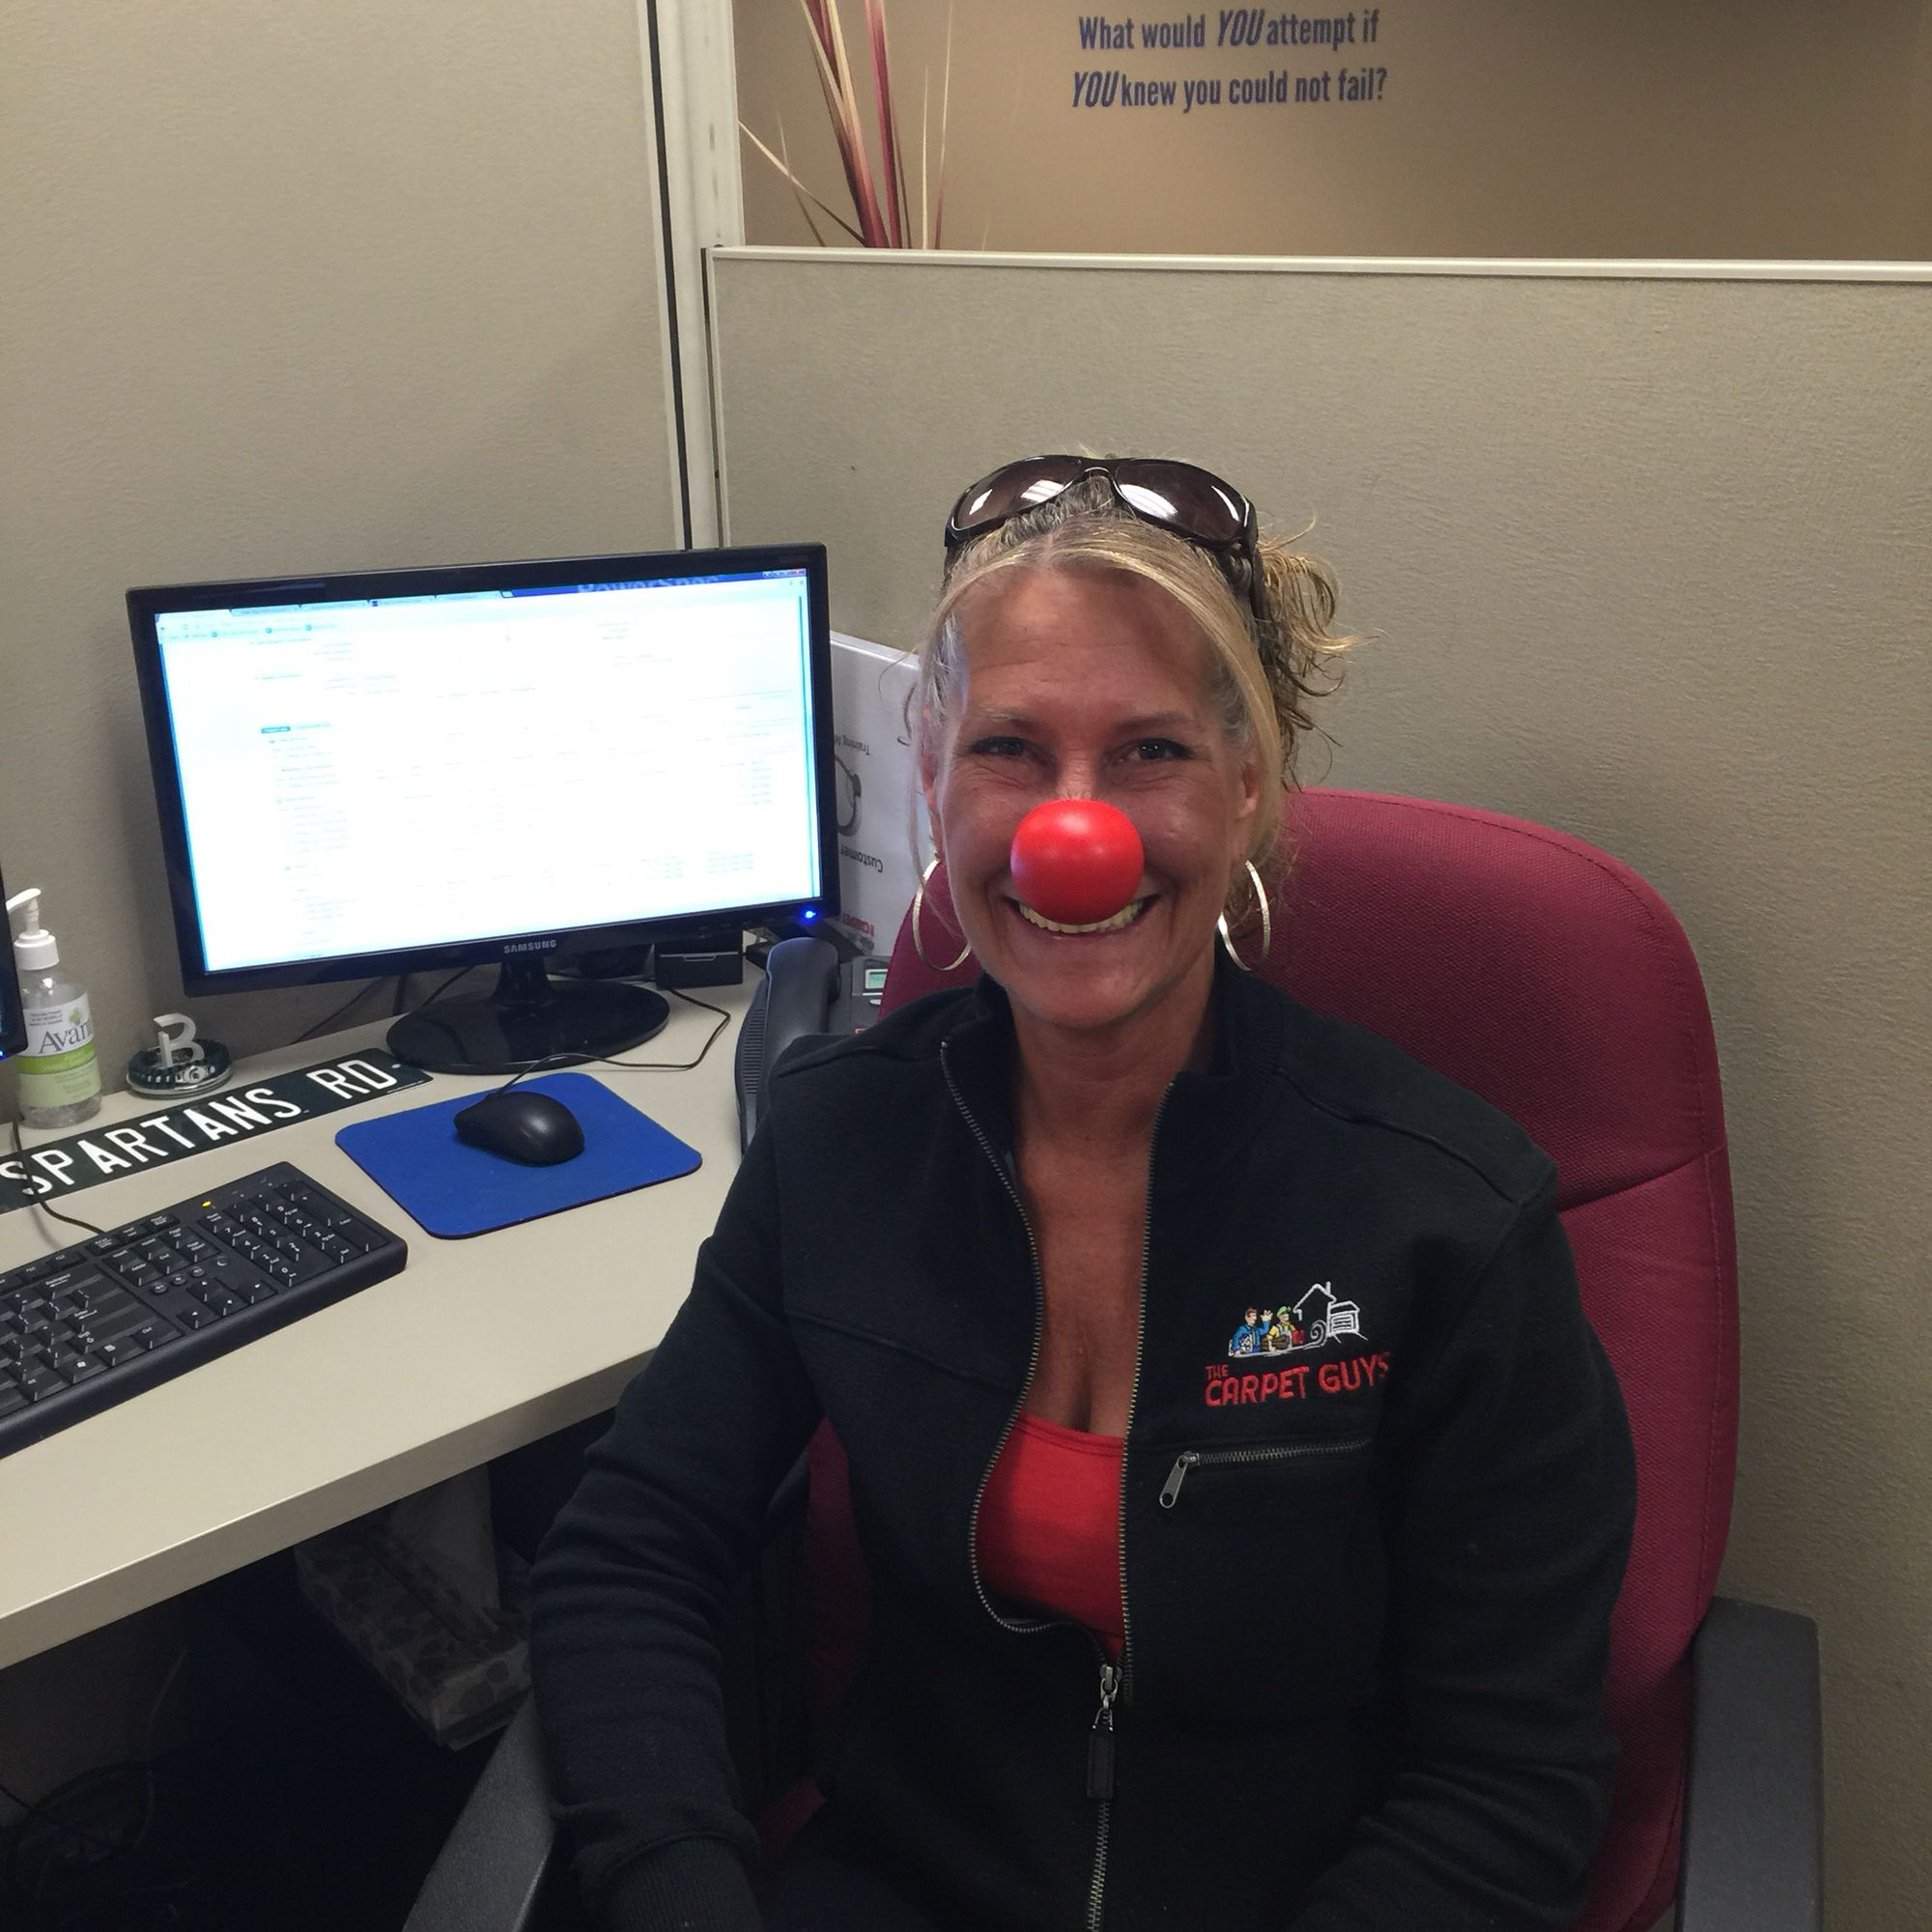 Becky Zago of The Carpet Guys having fun sharing the message #RedNoseDay #RedNoseDay2015